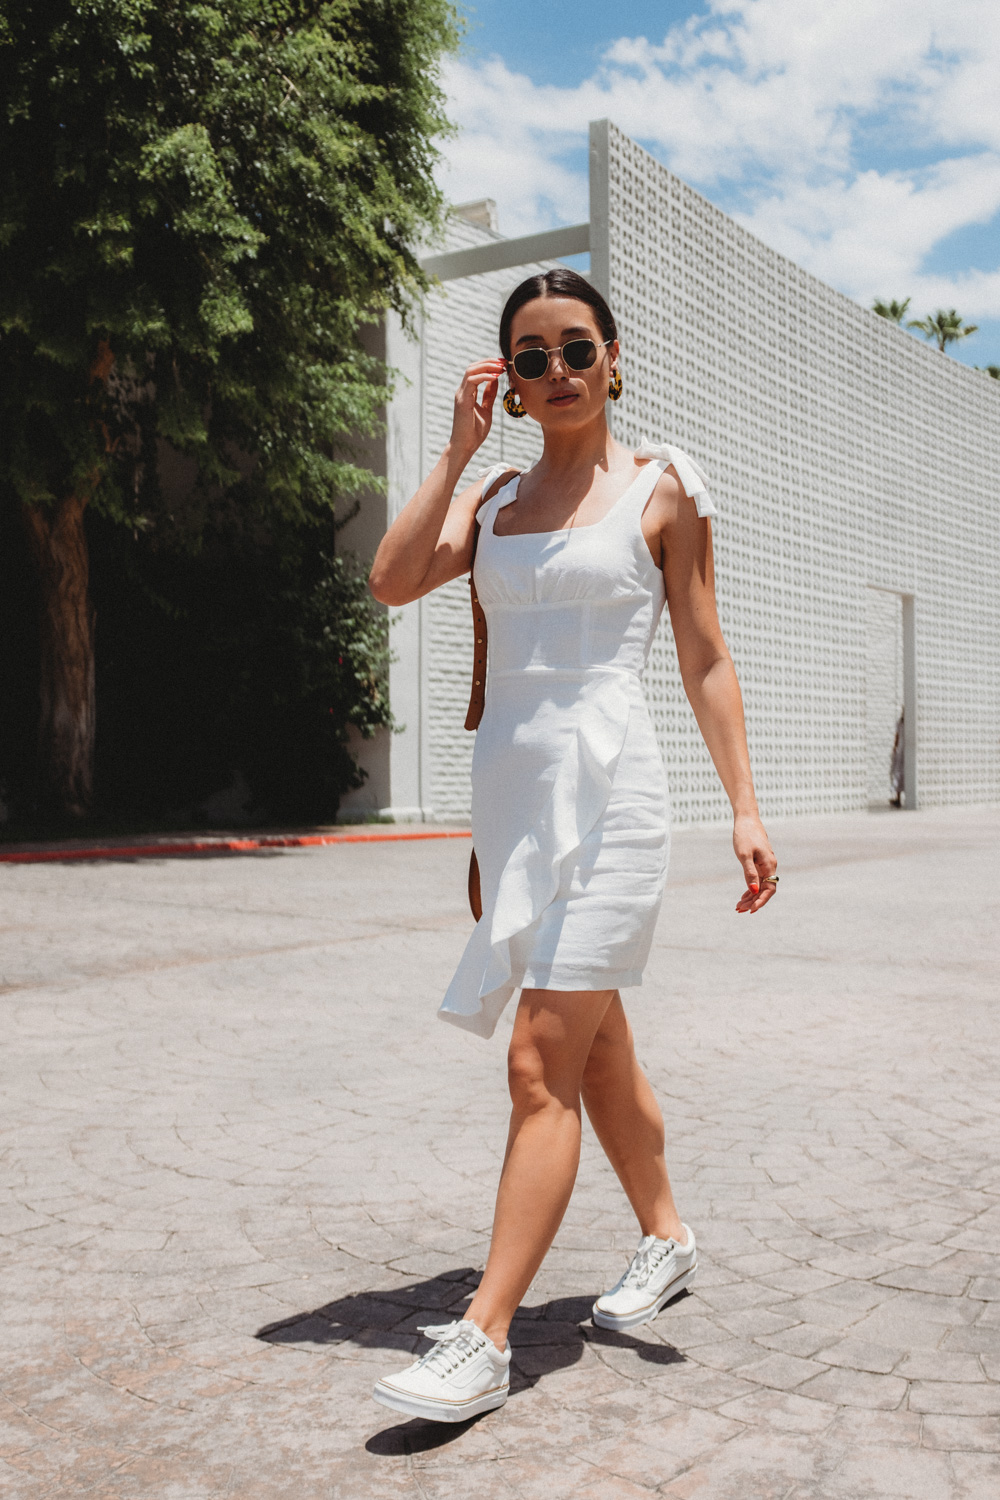 LOVE OR MONEY by Emily Tong weekend getaway style wearing white Endless Rose ruffle dress and white Vans in Palm Springs